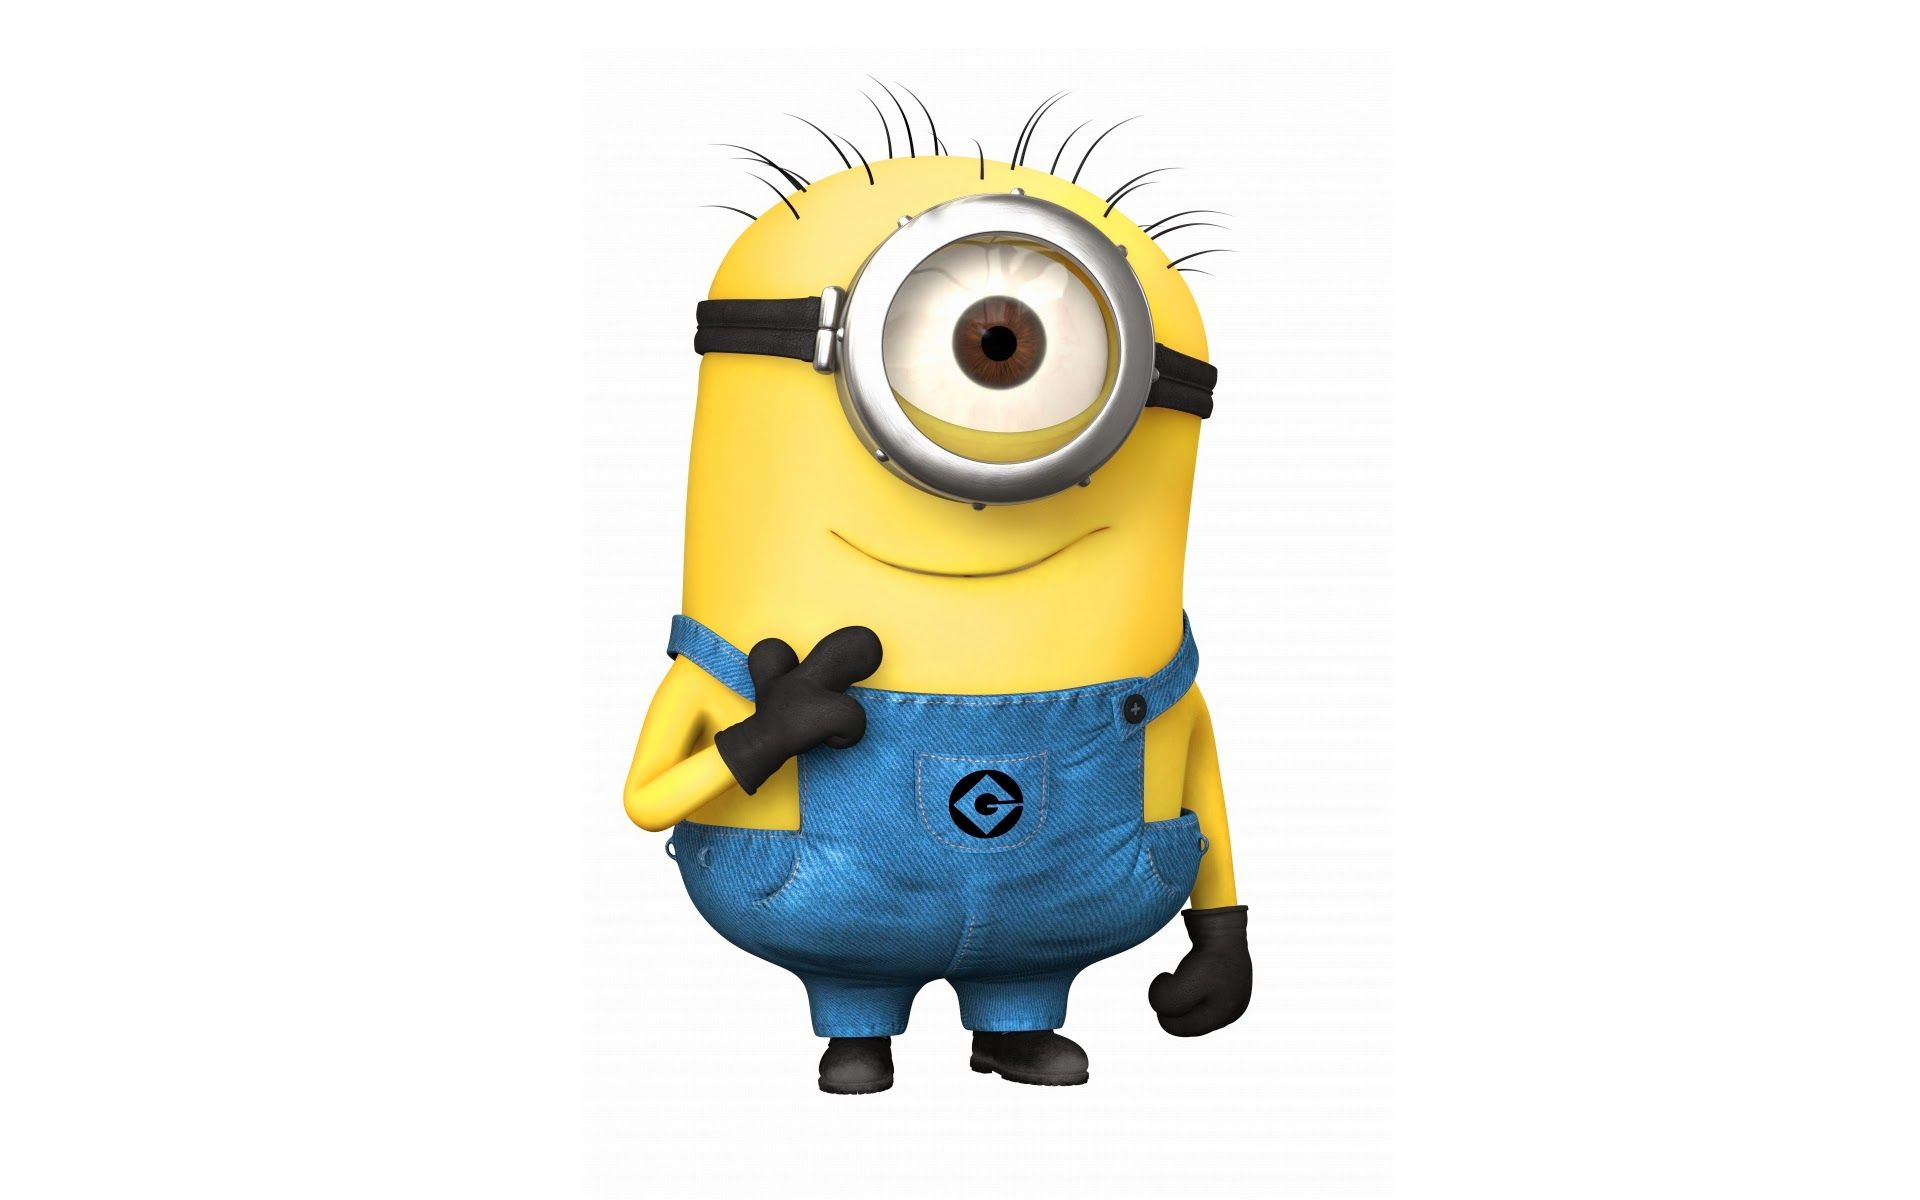 cute minion wallpaper hd free download. | thứ cần mua | pinterest